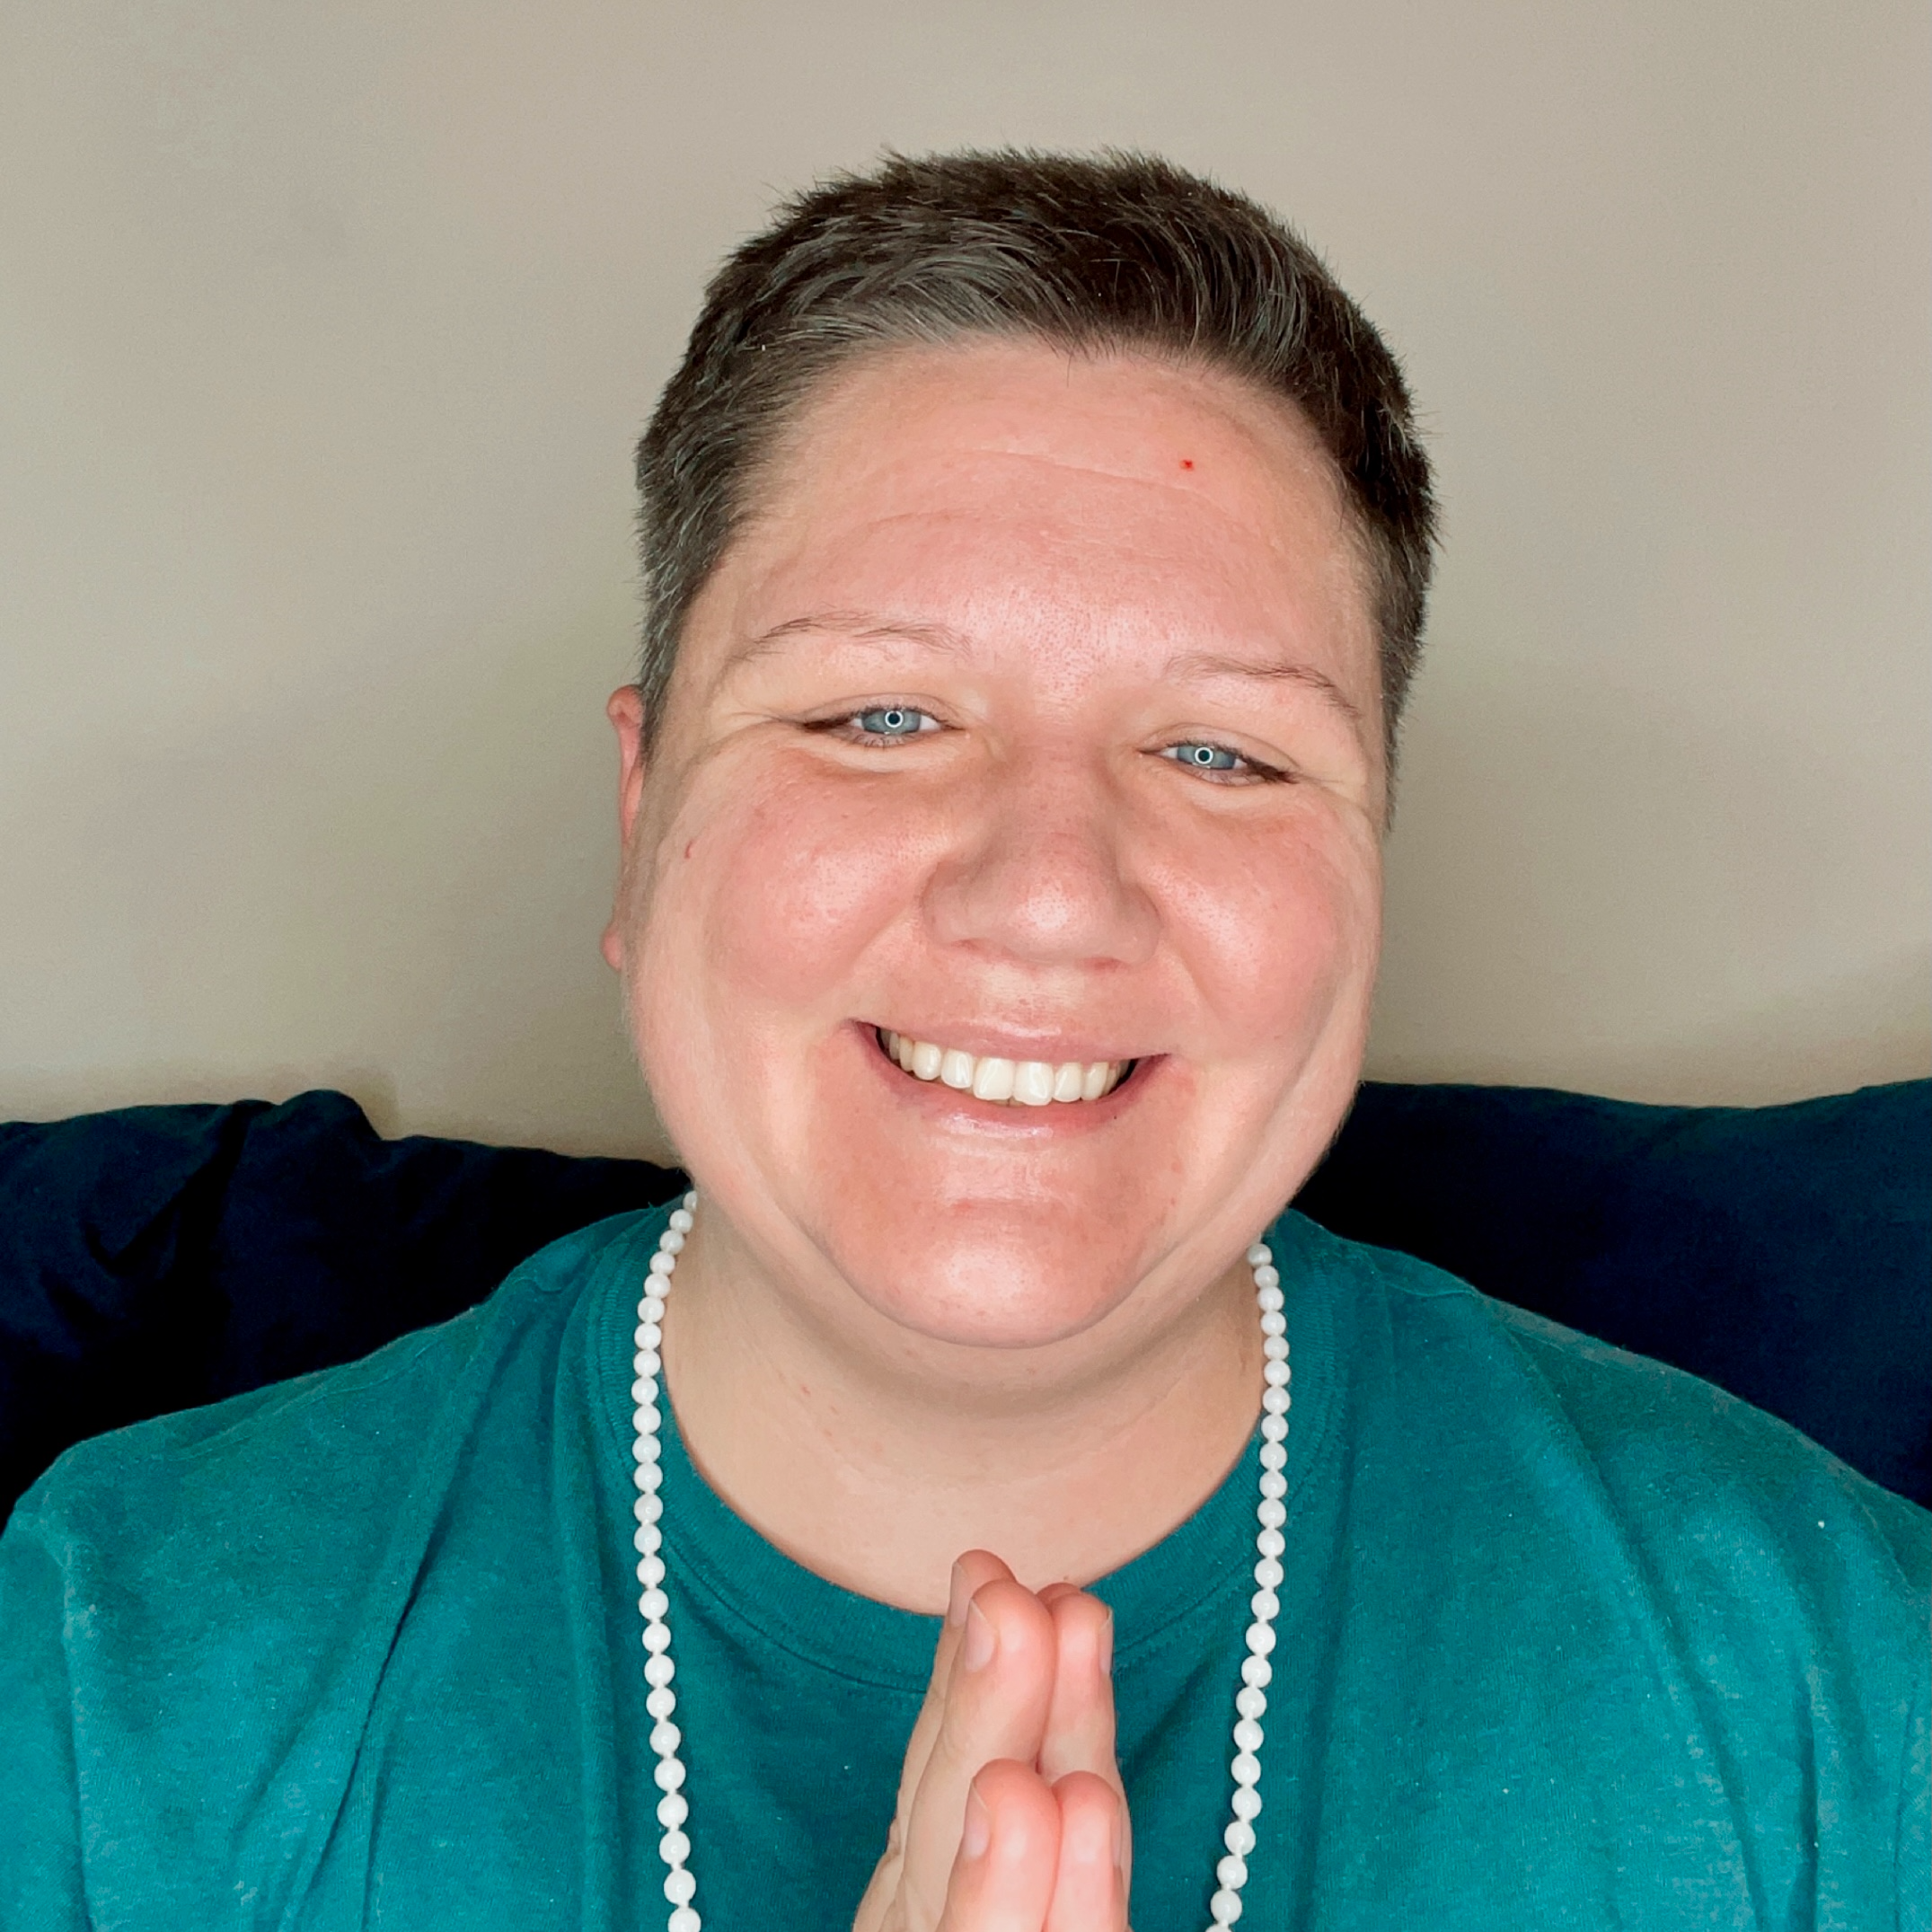 A still photo of Allé, a white non-binary, trans person with short grey/brown hair. They are standing in front of a white wall with the top of a sofa in the background, whilst wearing a teal green t-shirt and a white beaded necklace. Their fingertips are together in front of their chest and they are smiling showing his amazing teeth.